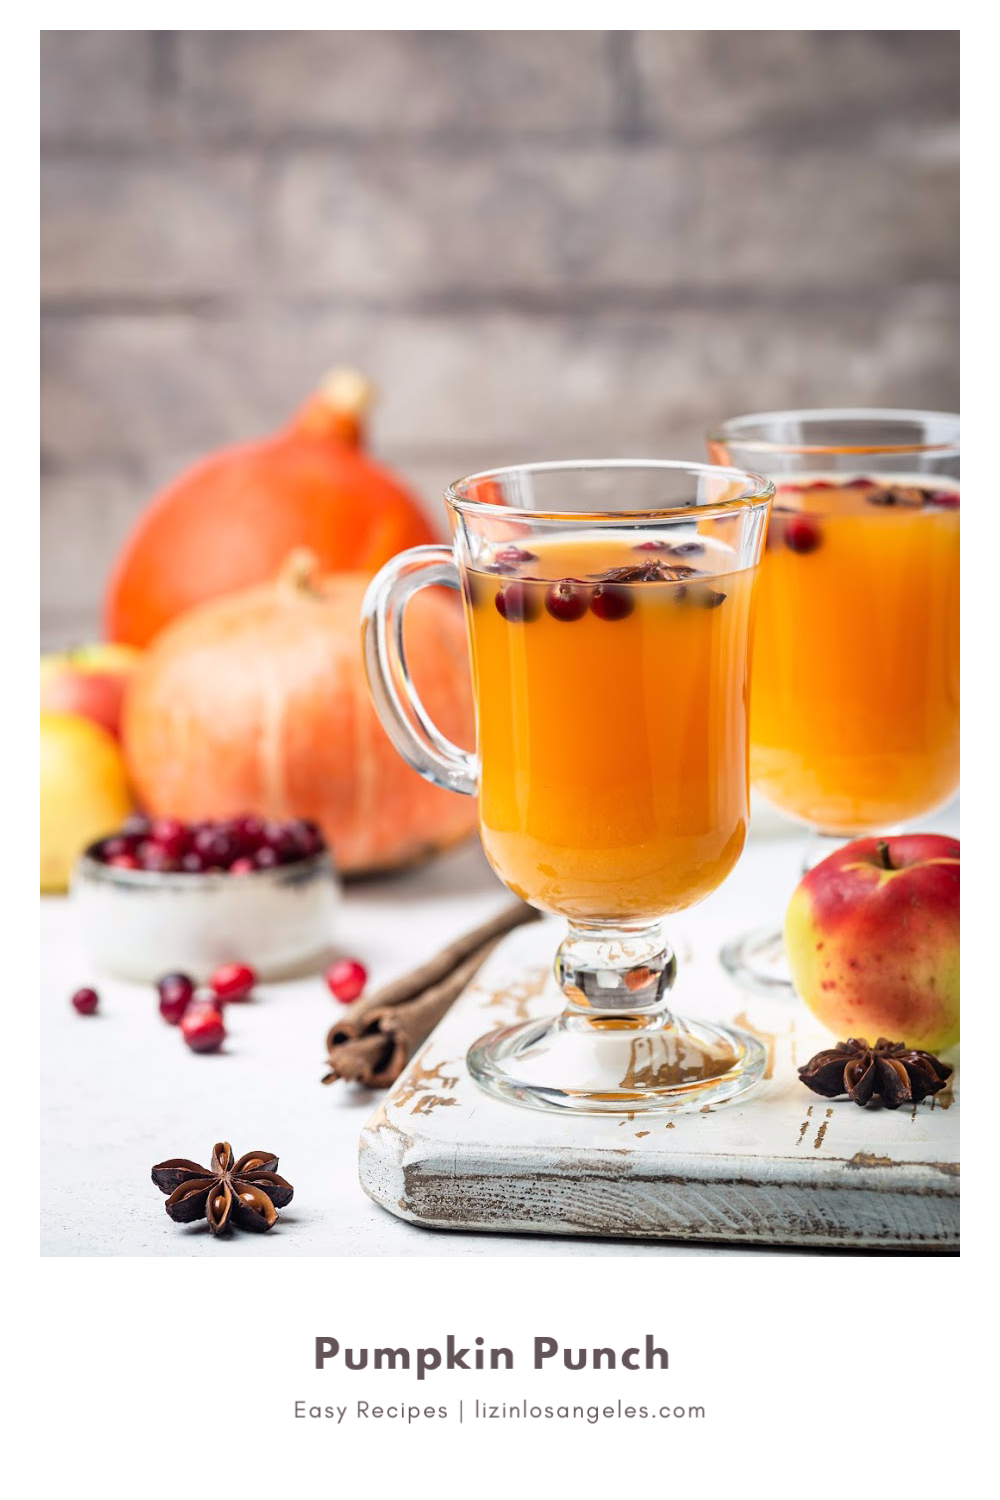 Pumpkin Punch Cocktail Recipe, a recipe by Liz in Los Angeles, an image of pumpkin punch, pumpkins and cranberries